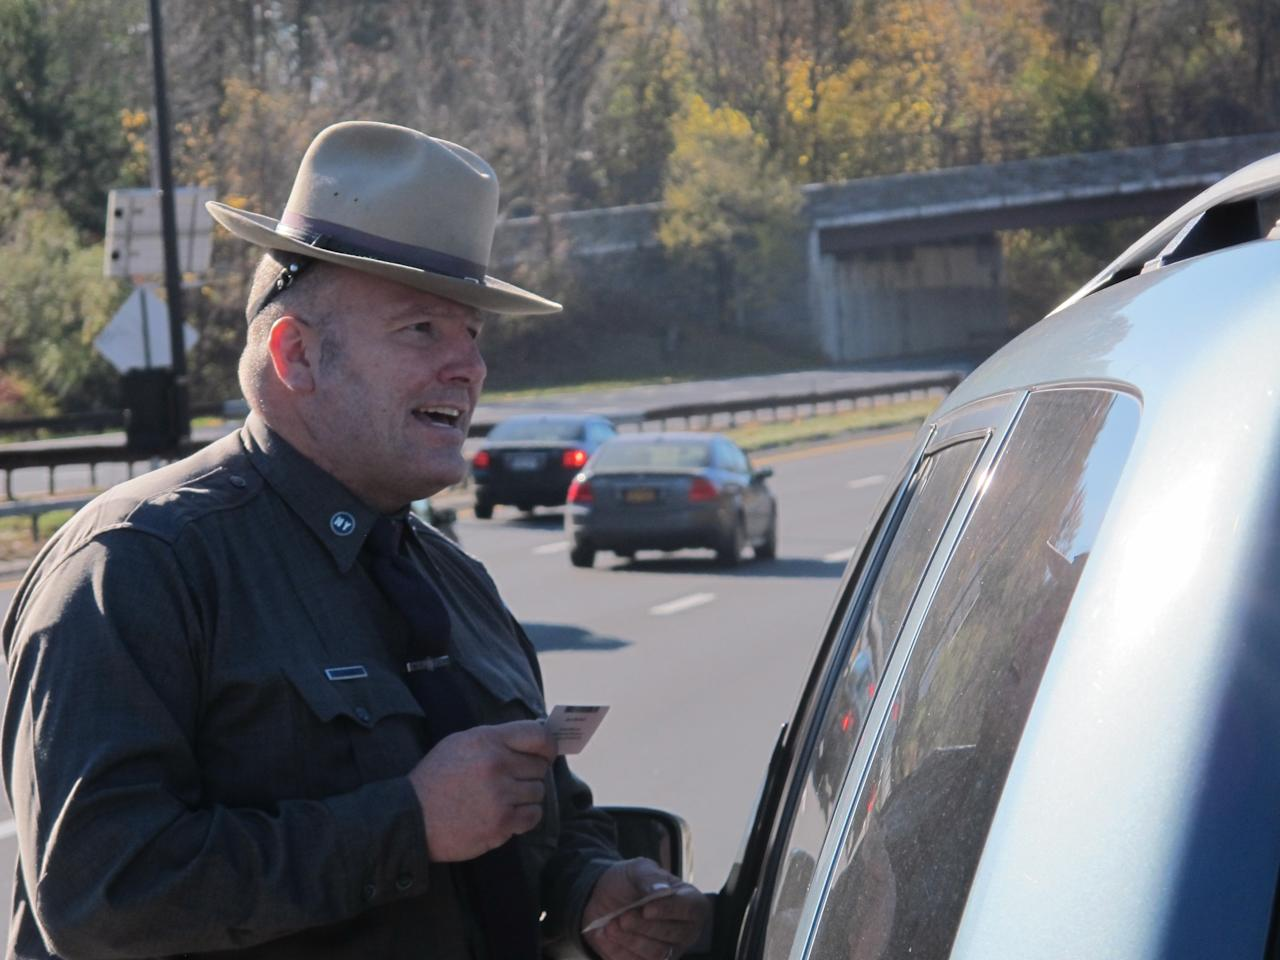 New York State Trooper Clayton Howell checks a driver's license after making a traffic stop for distracted driving in Greenburgh, N.Y., on Thursday, Nov. 14, 2013. Troopers are using a fleet of tall, unmarked SUVs as part of a crackdown on texting while driving. (AP Photo/Jim Fitzgerald)